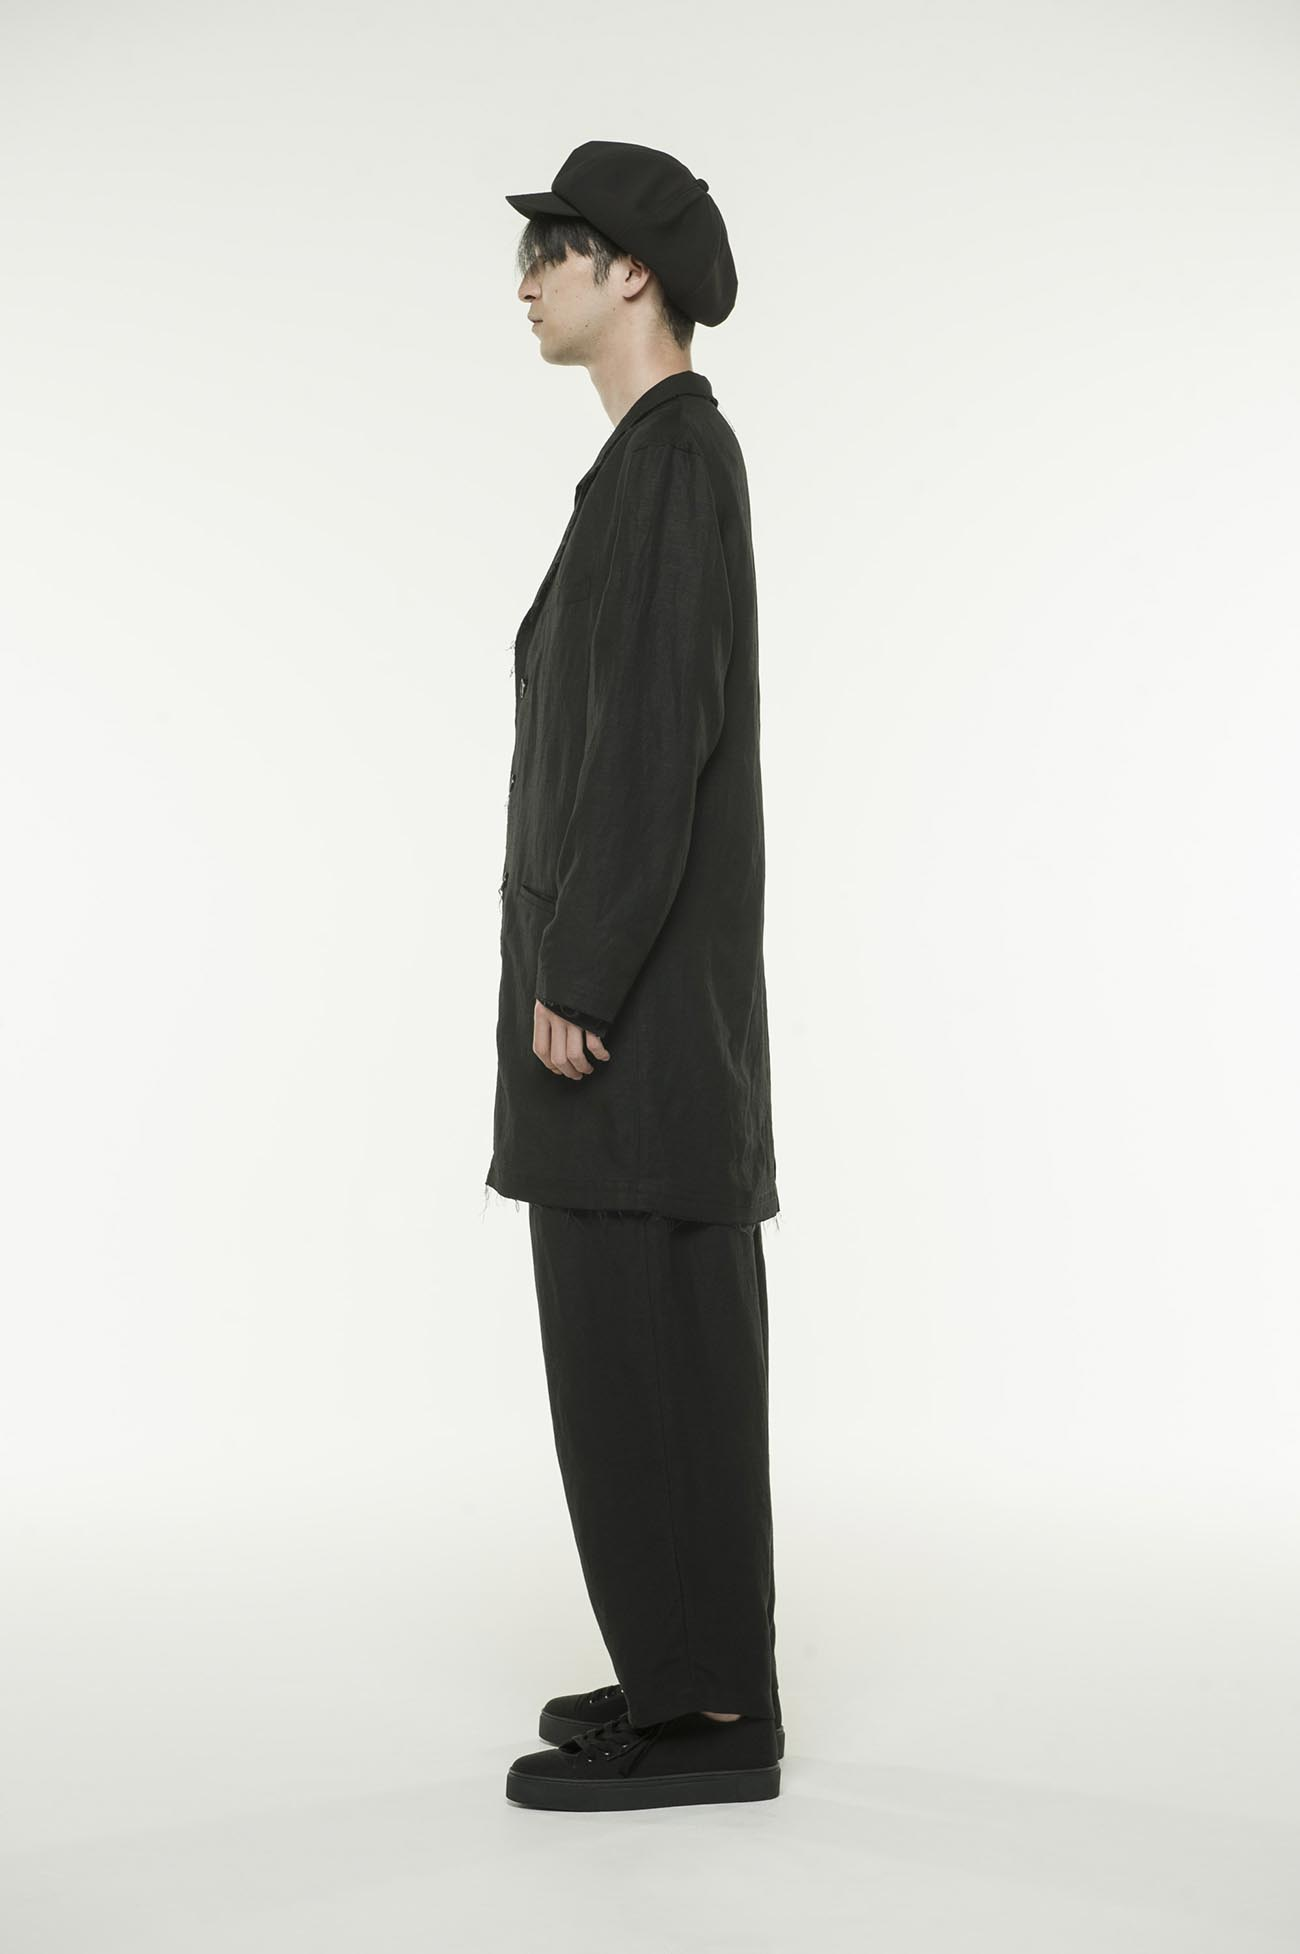 Rayon Linen Easy Cross・B 3 BS Tailored Long Shirt Jacket